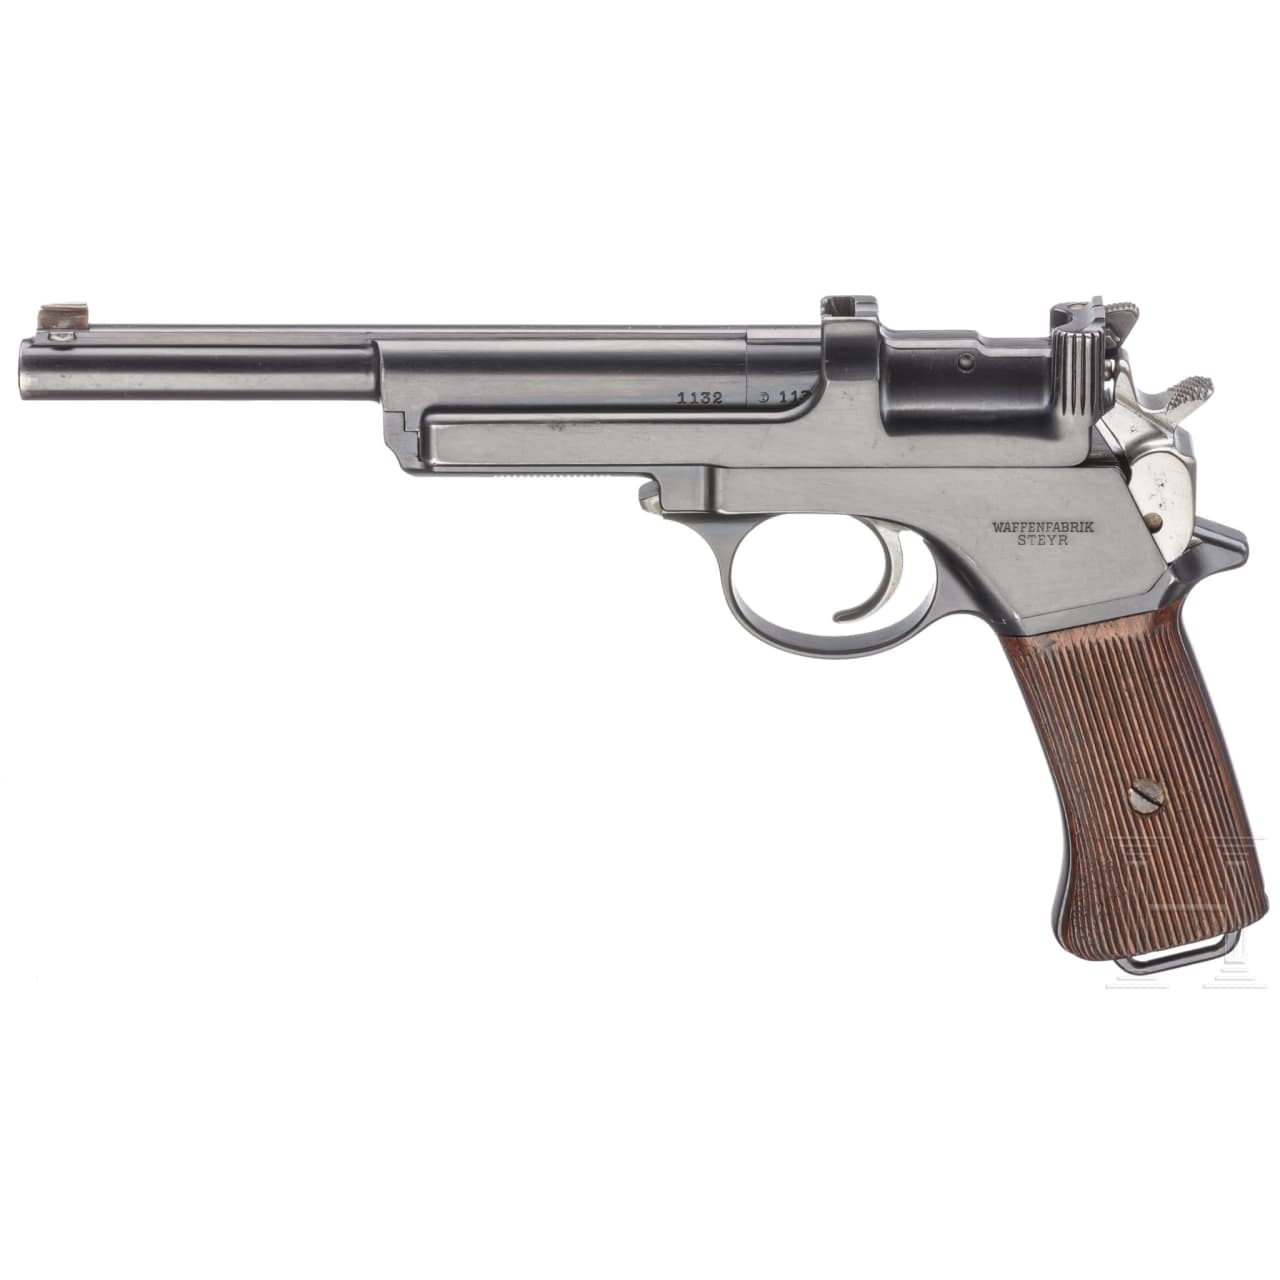 A Mannlicher Mod. 1905 (preliminary or transitional model), also Mod. 1901/05 or 1904